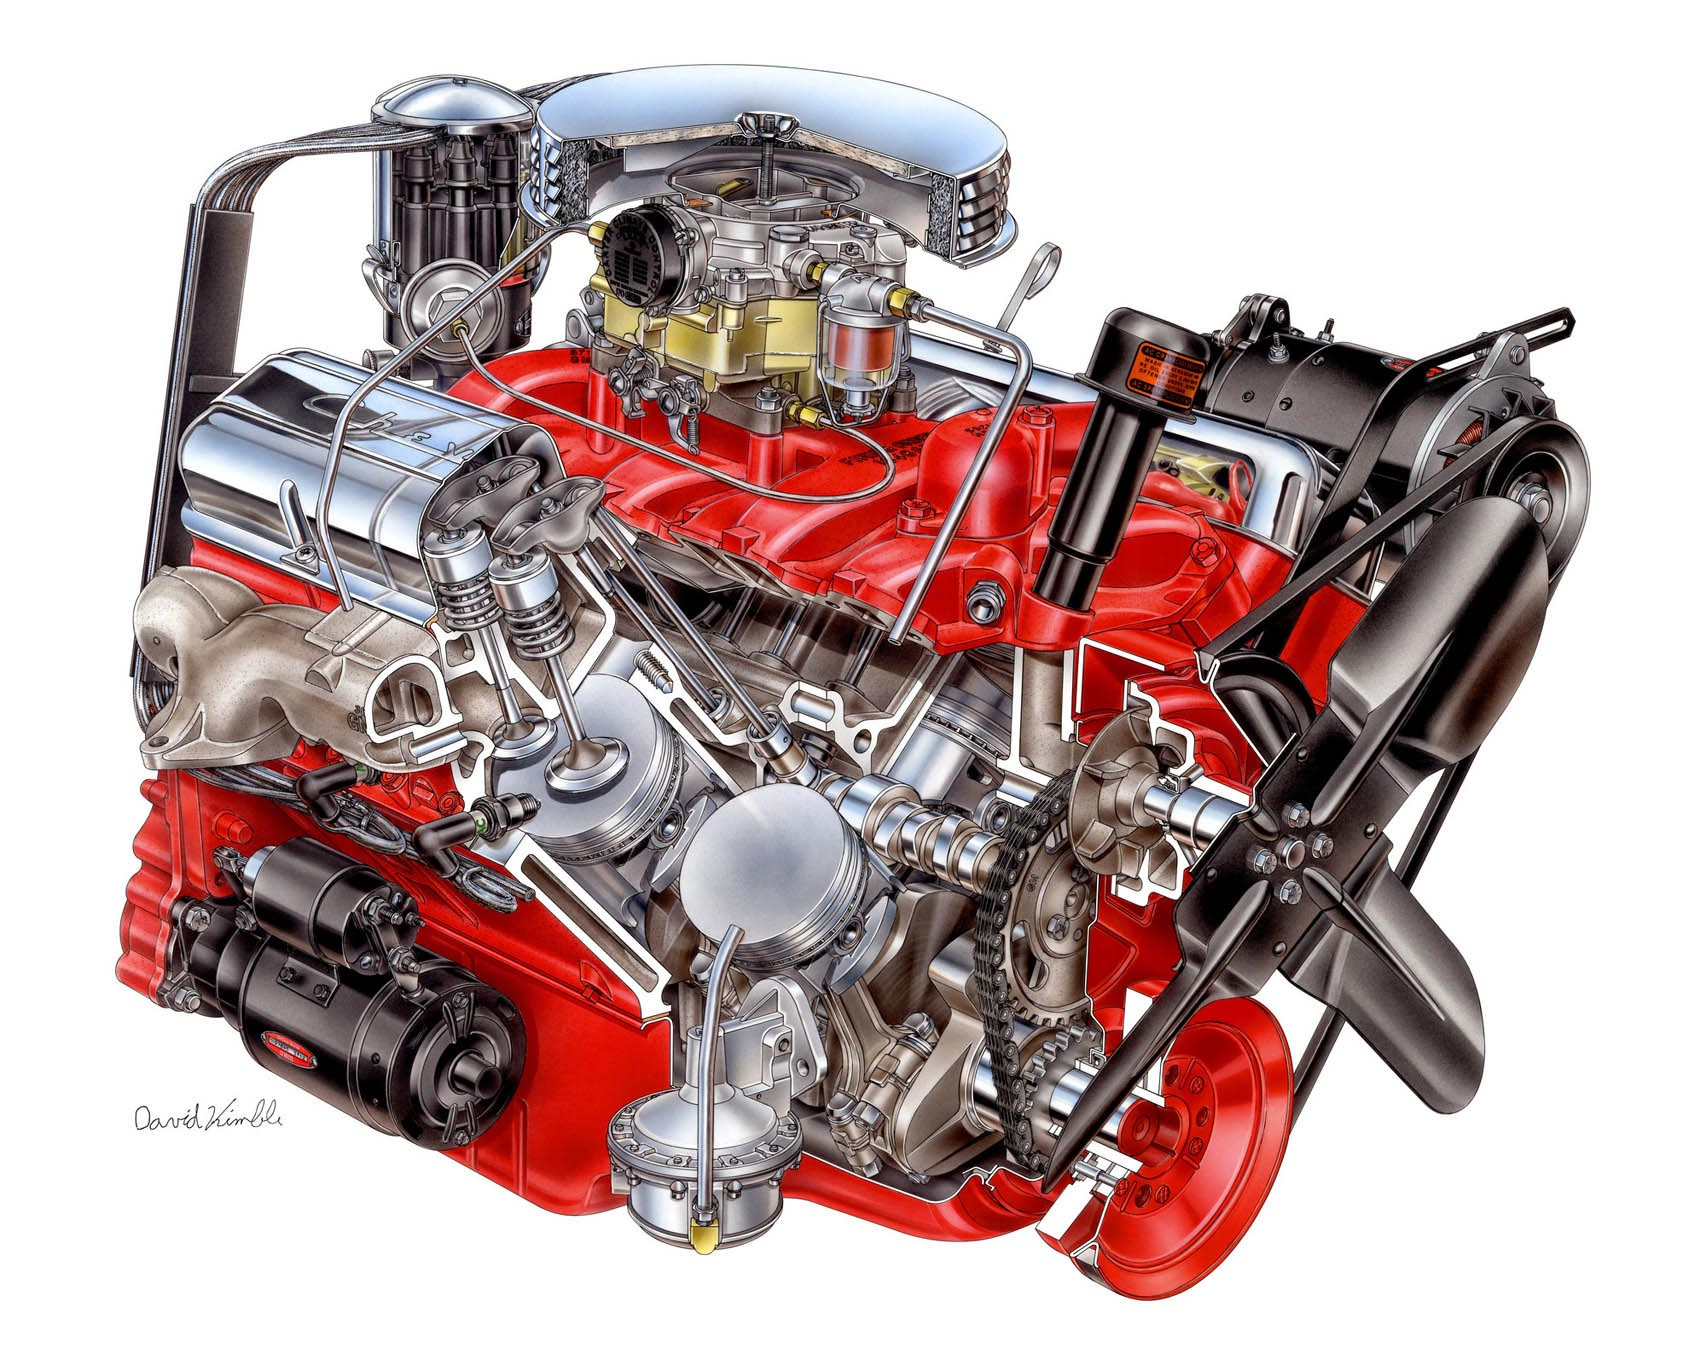 Chevrolet Corvette V8 engine cutaway